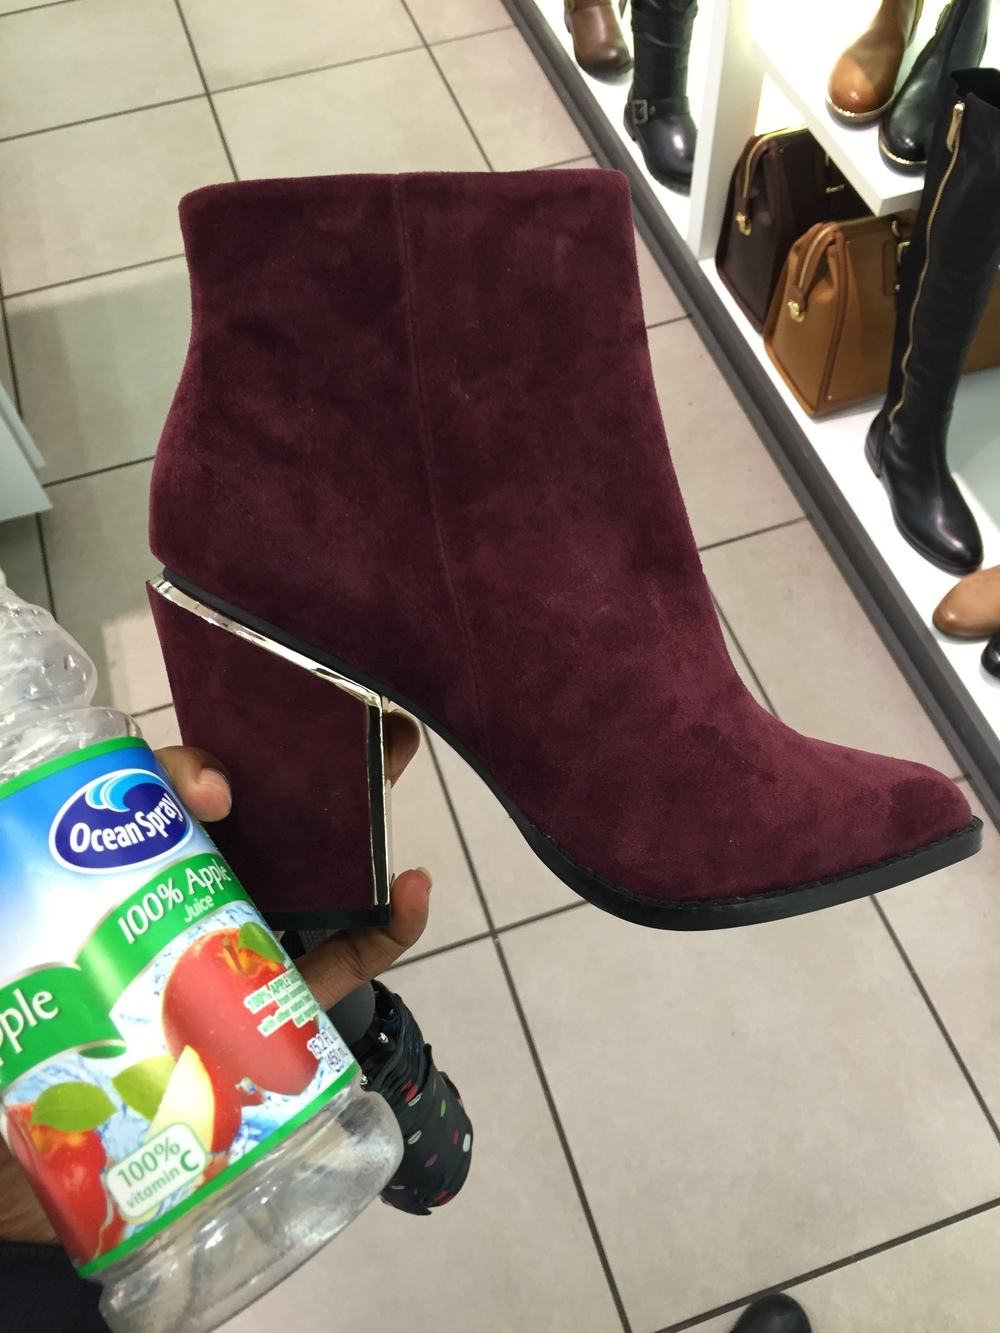 finding new boots for the season. Apple juice is always a favorite :)